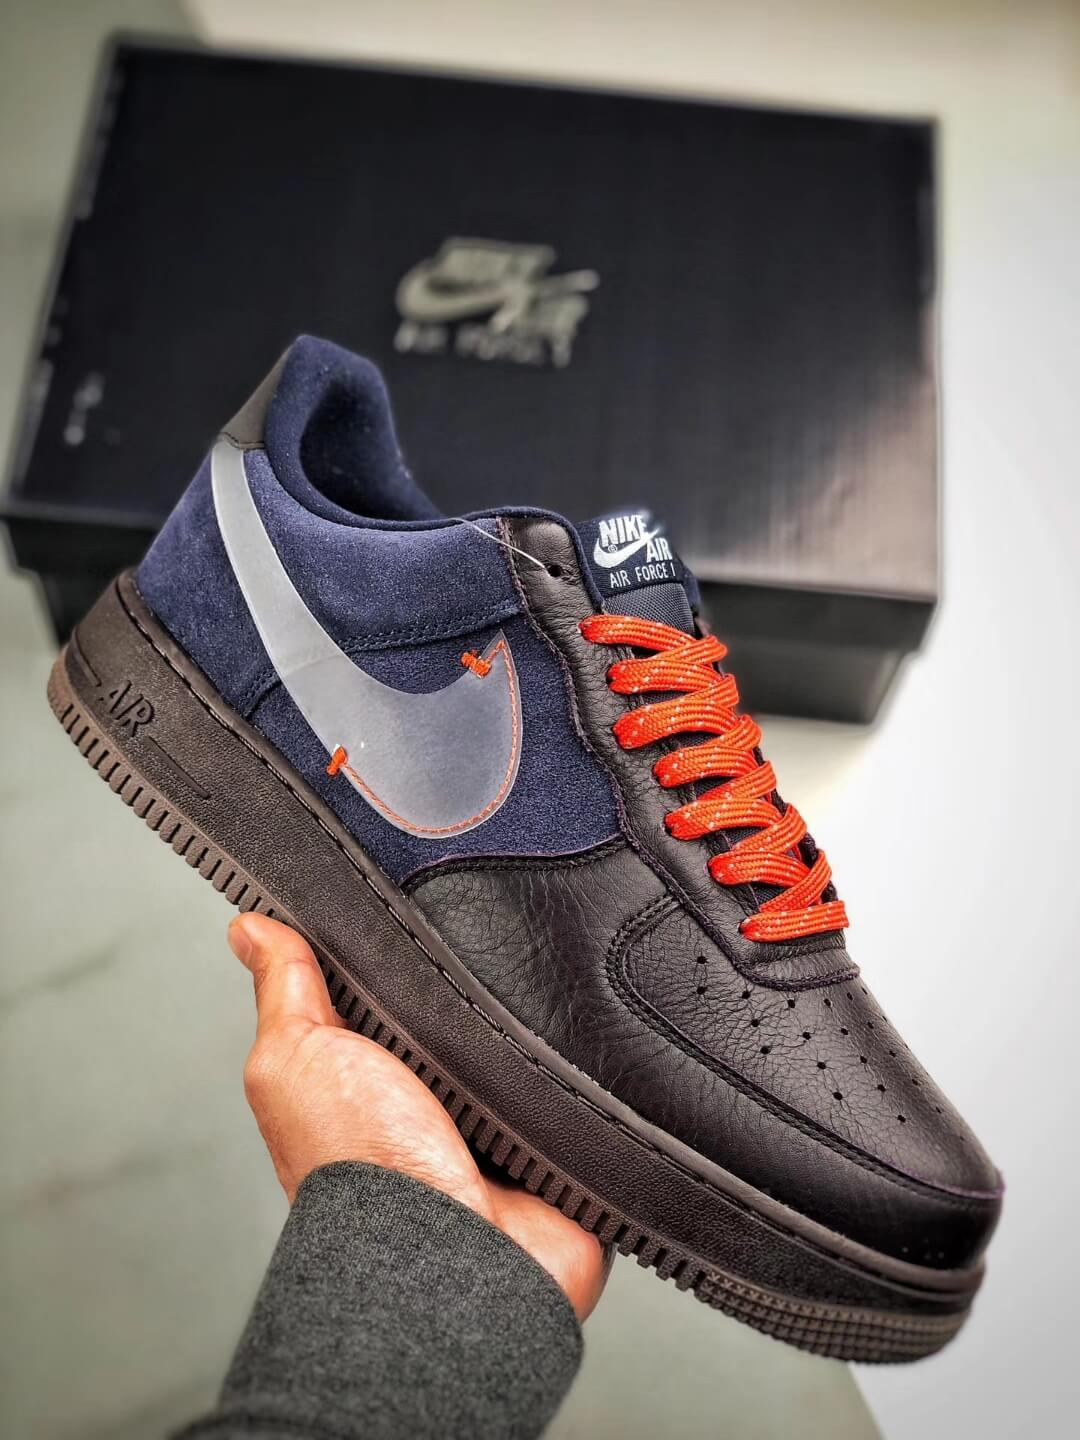 The Air Force 1 Low Burgundy Ash